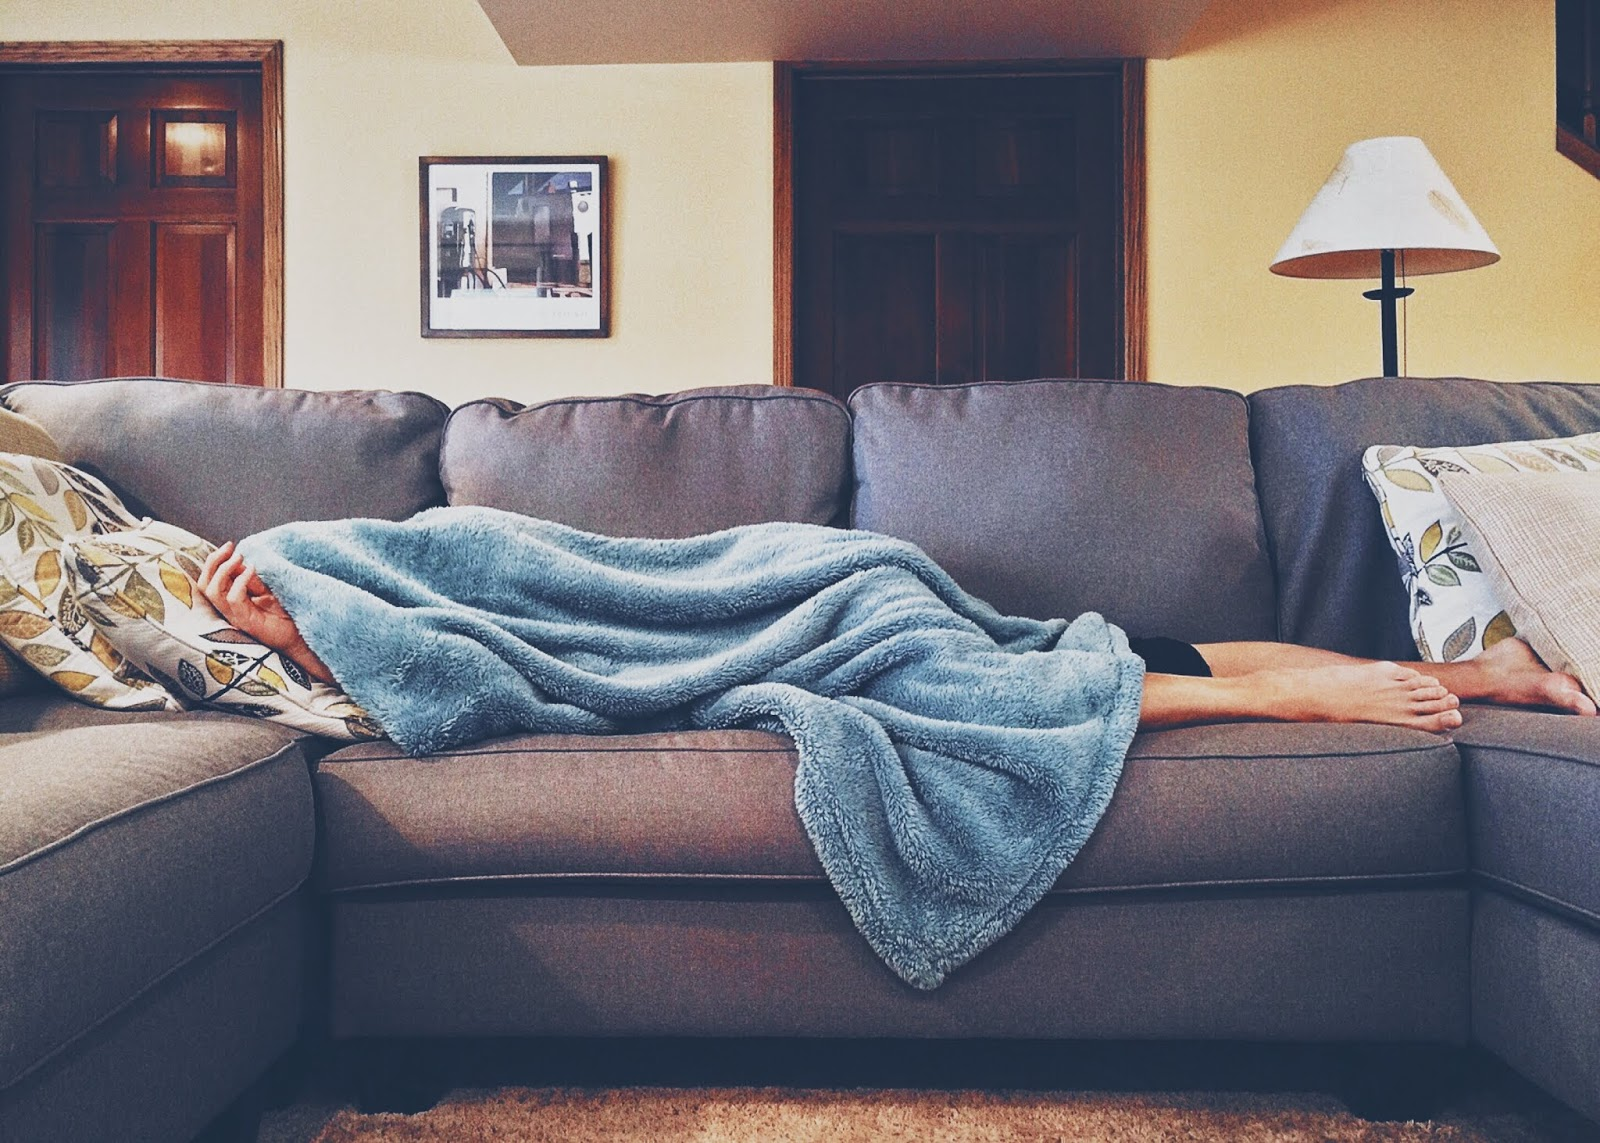 TV shows for when you don't feel well